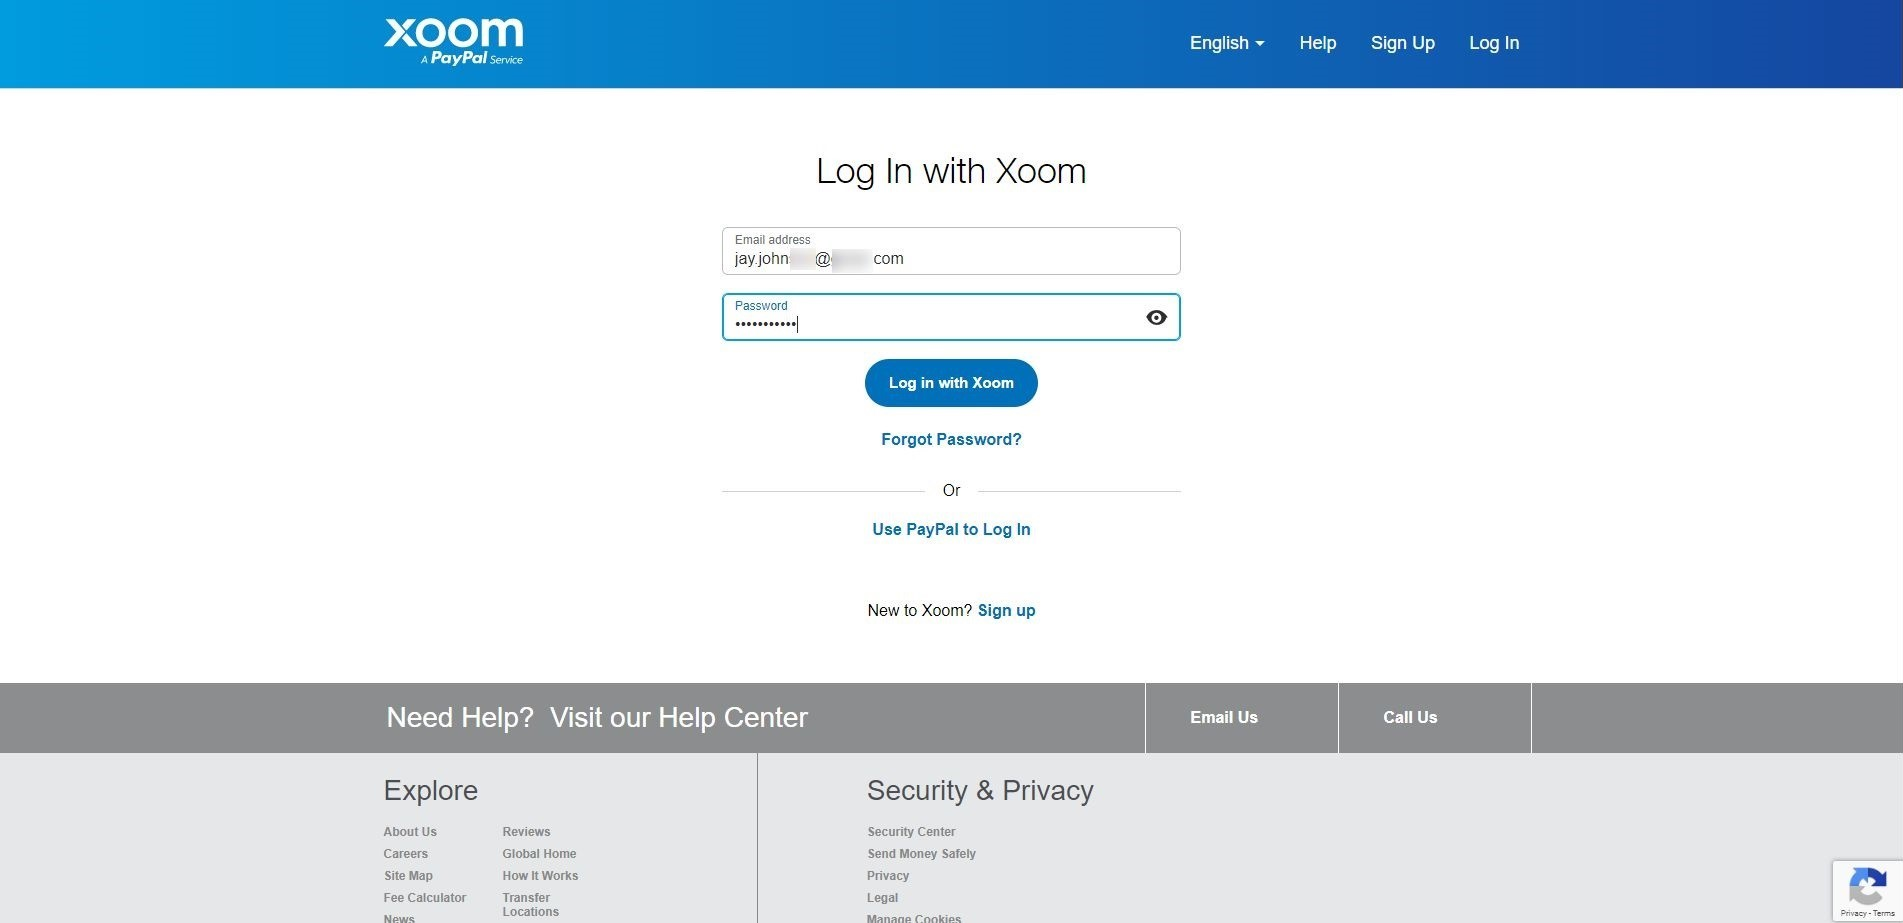 log in with xoom creds